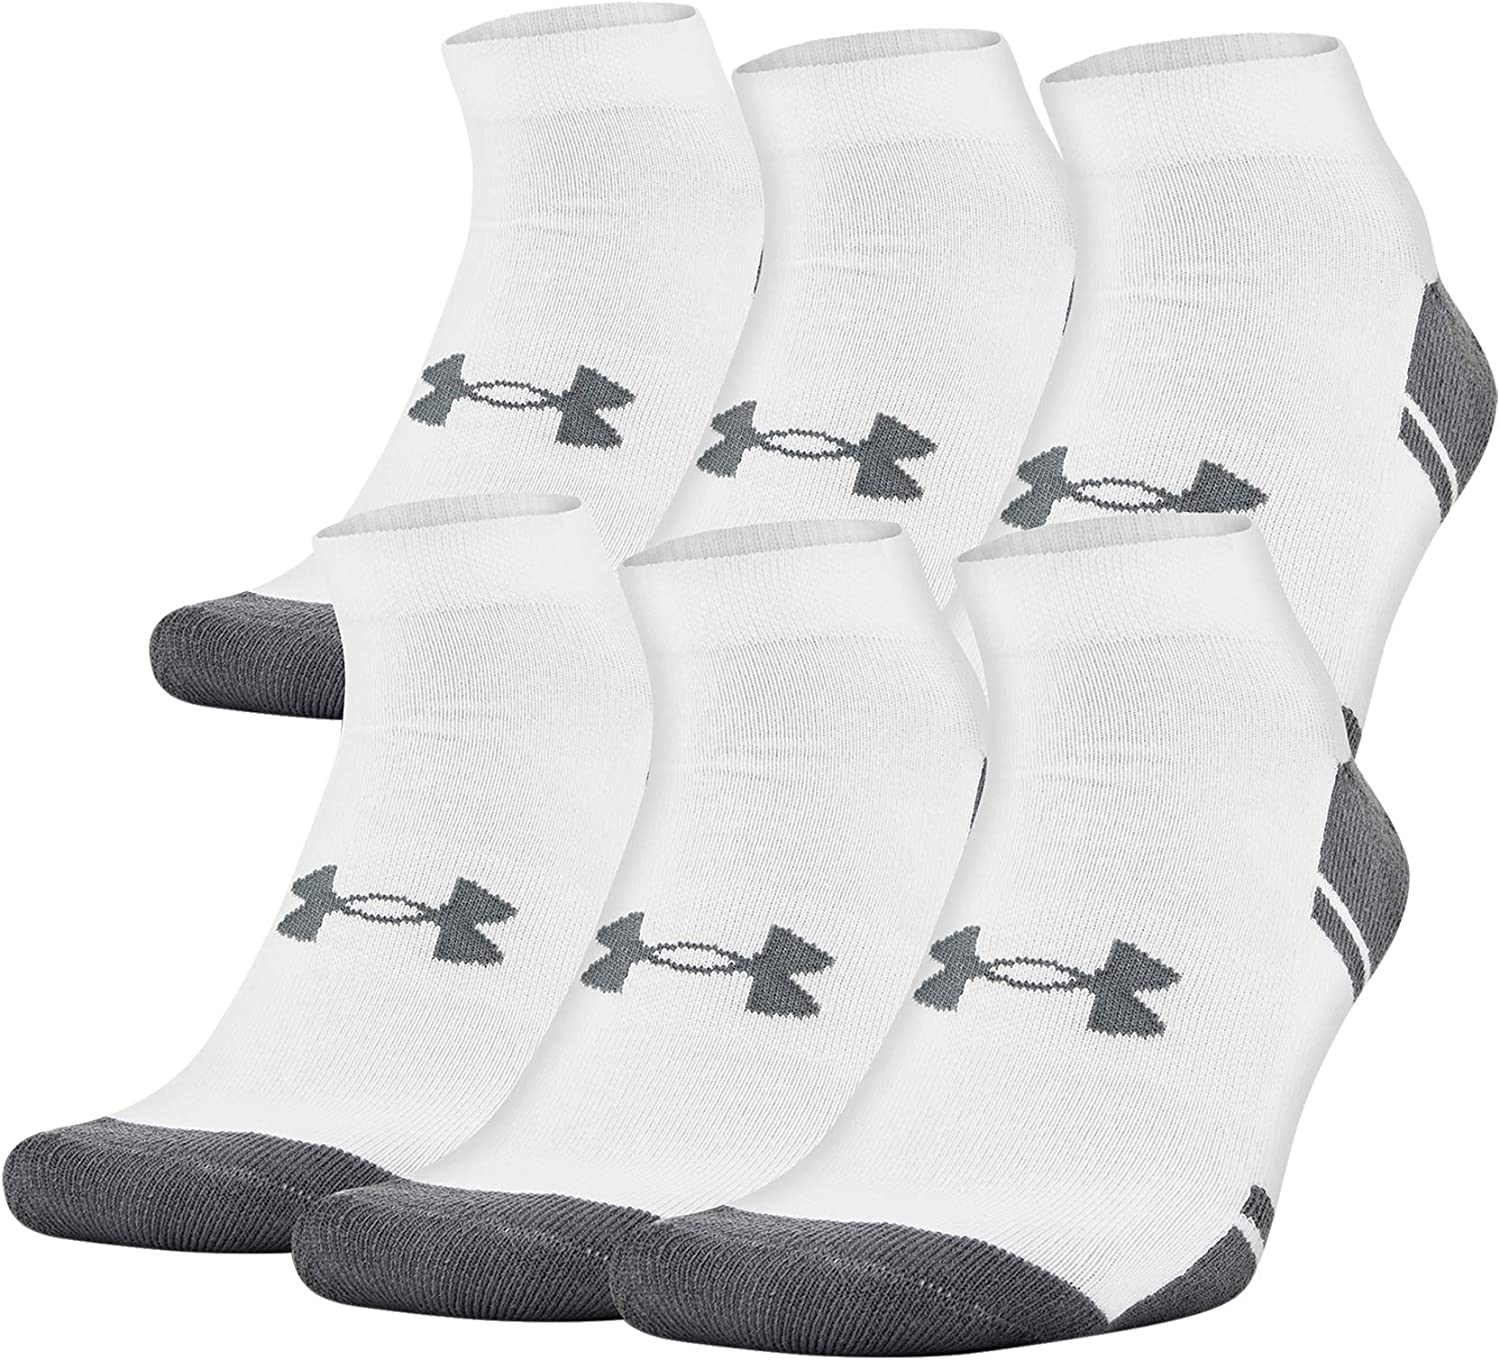 Under Armour Adult Resistor 3.0 Low Cut Socks (6 and 12 Pack)